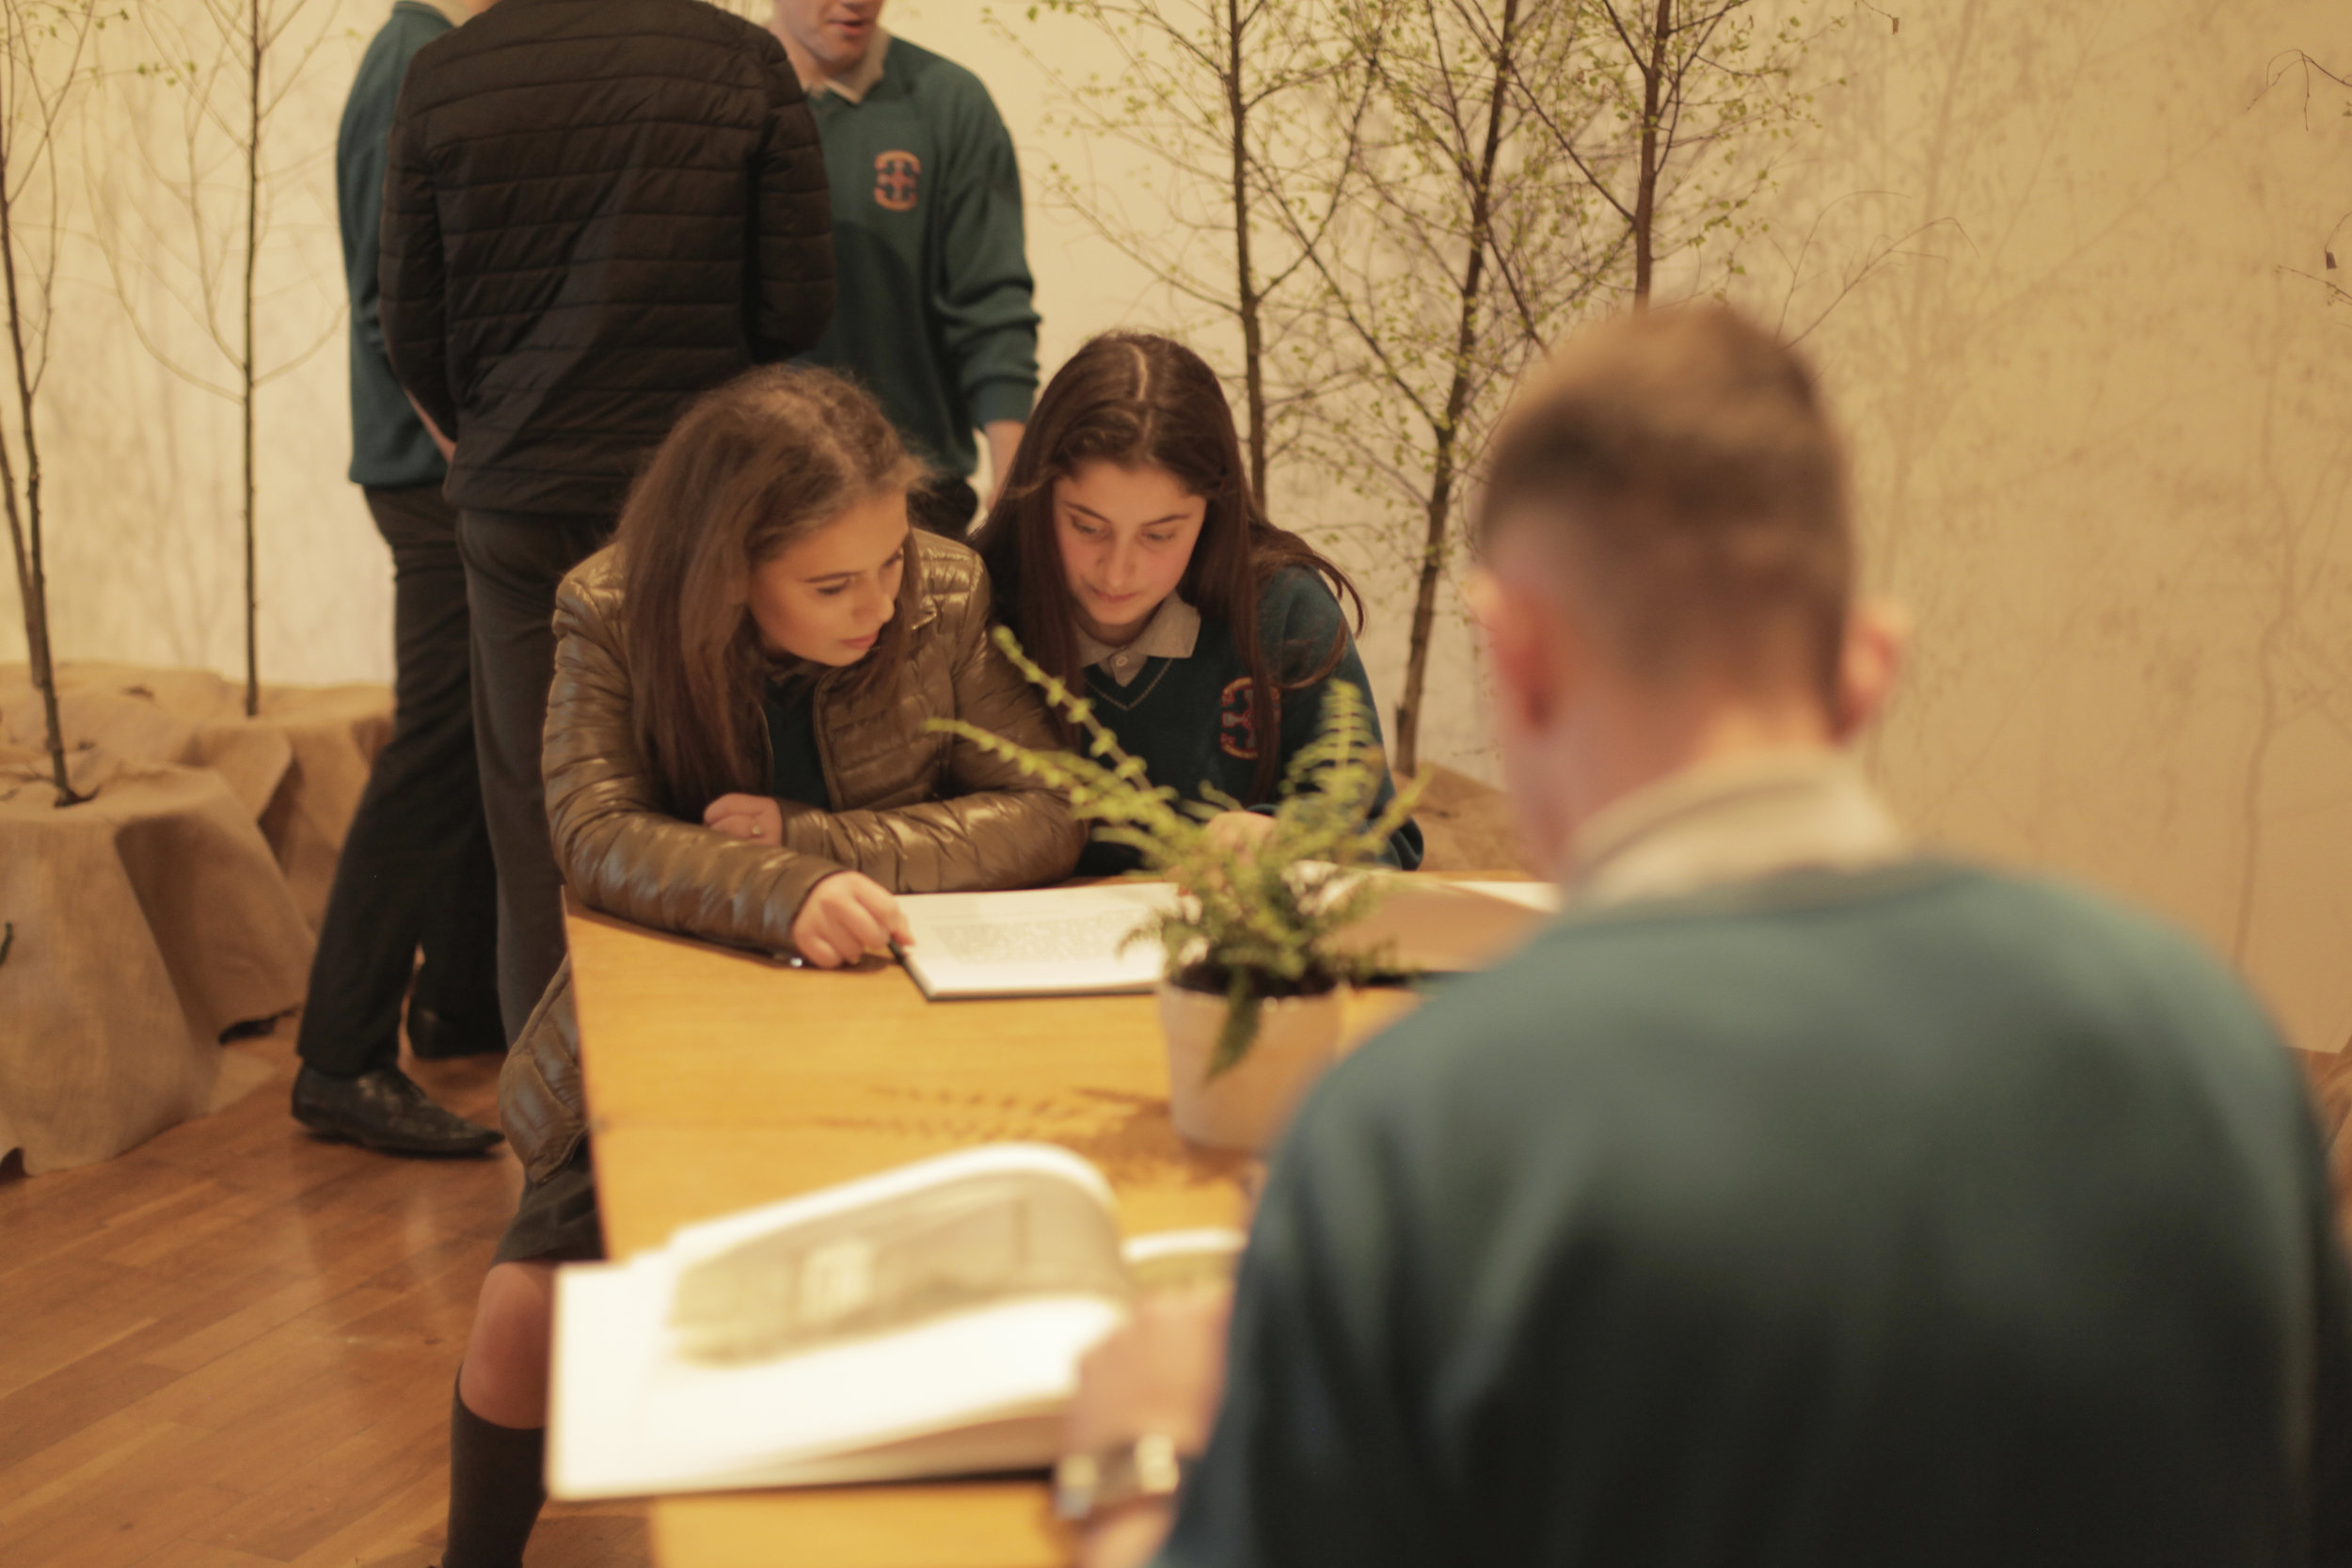 Students looking at artwork created by artist Jane Locke detailing research on the history of the postal system; at Futures exhibition 2017 at RHA Gallery, Dublin